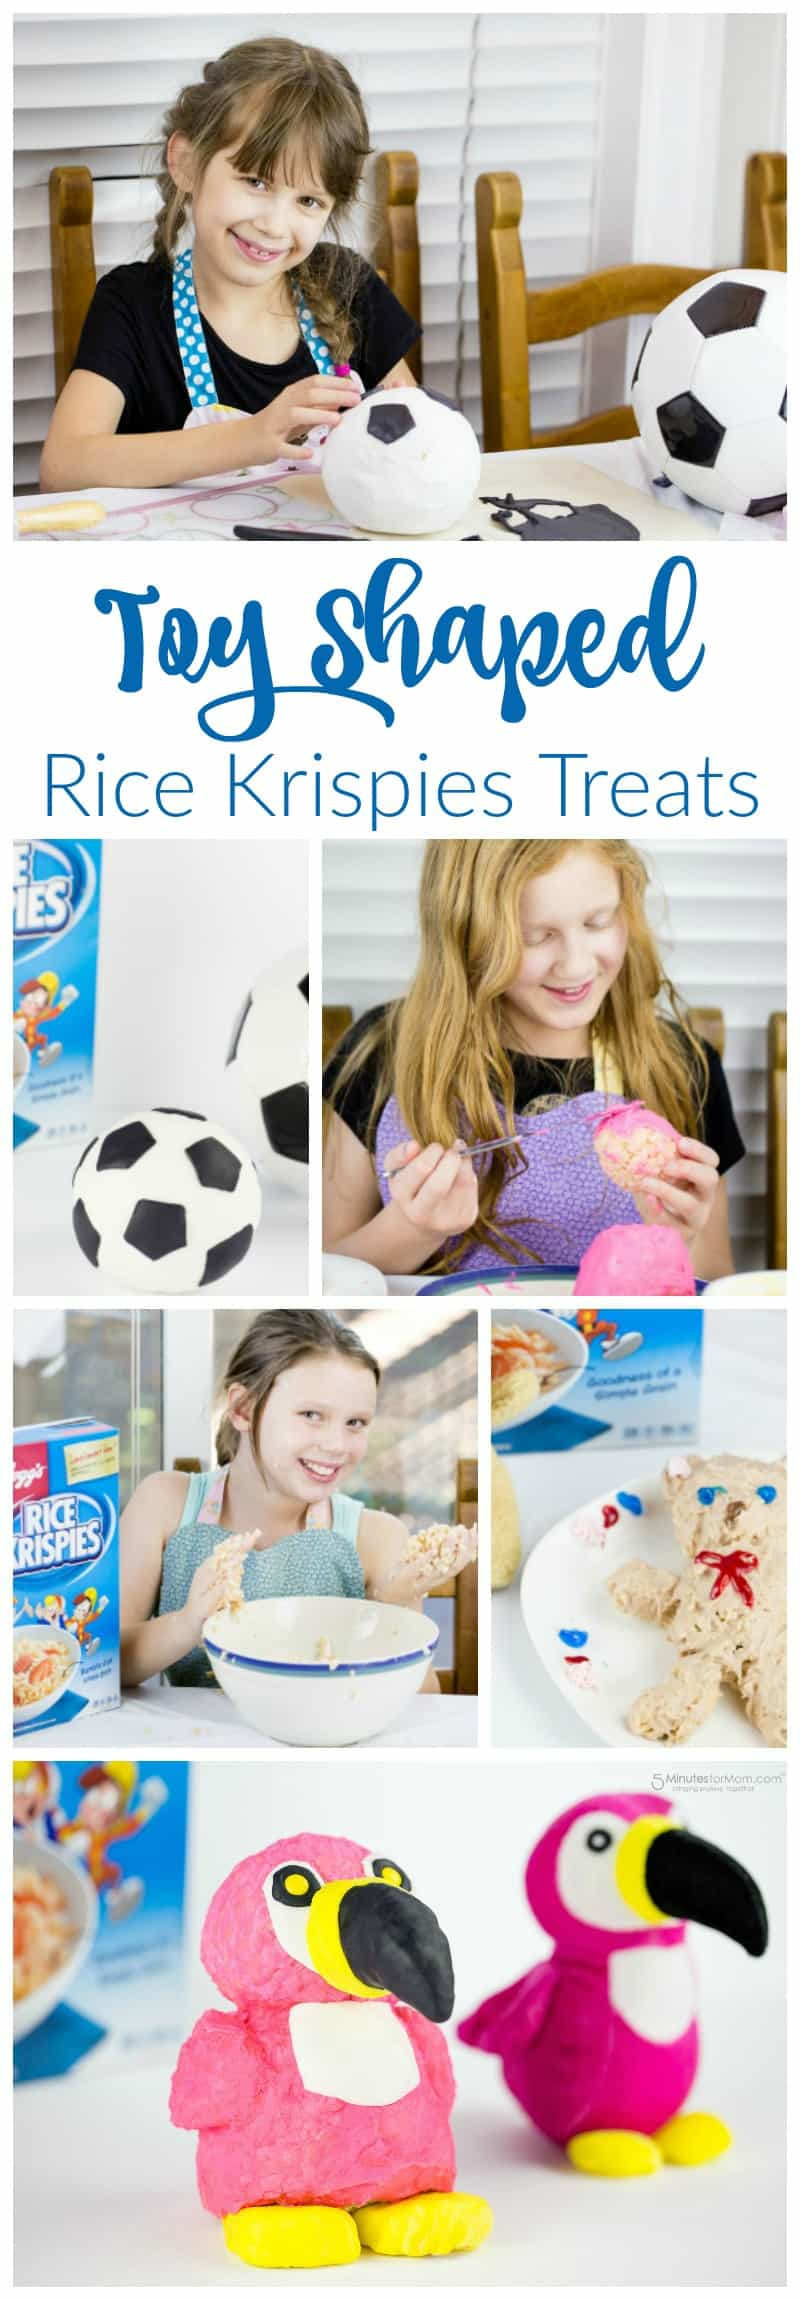 Toy Shaped Rice Krispies Treats